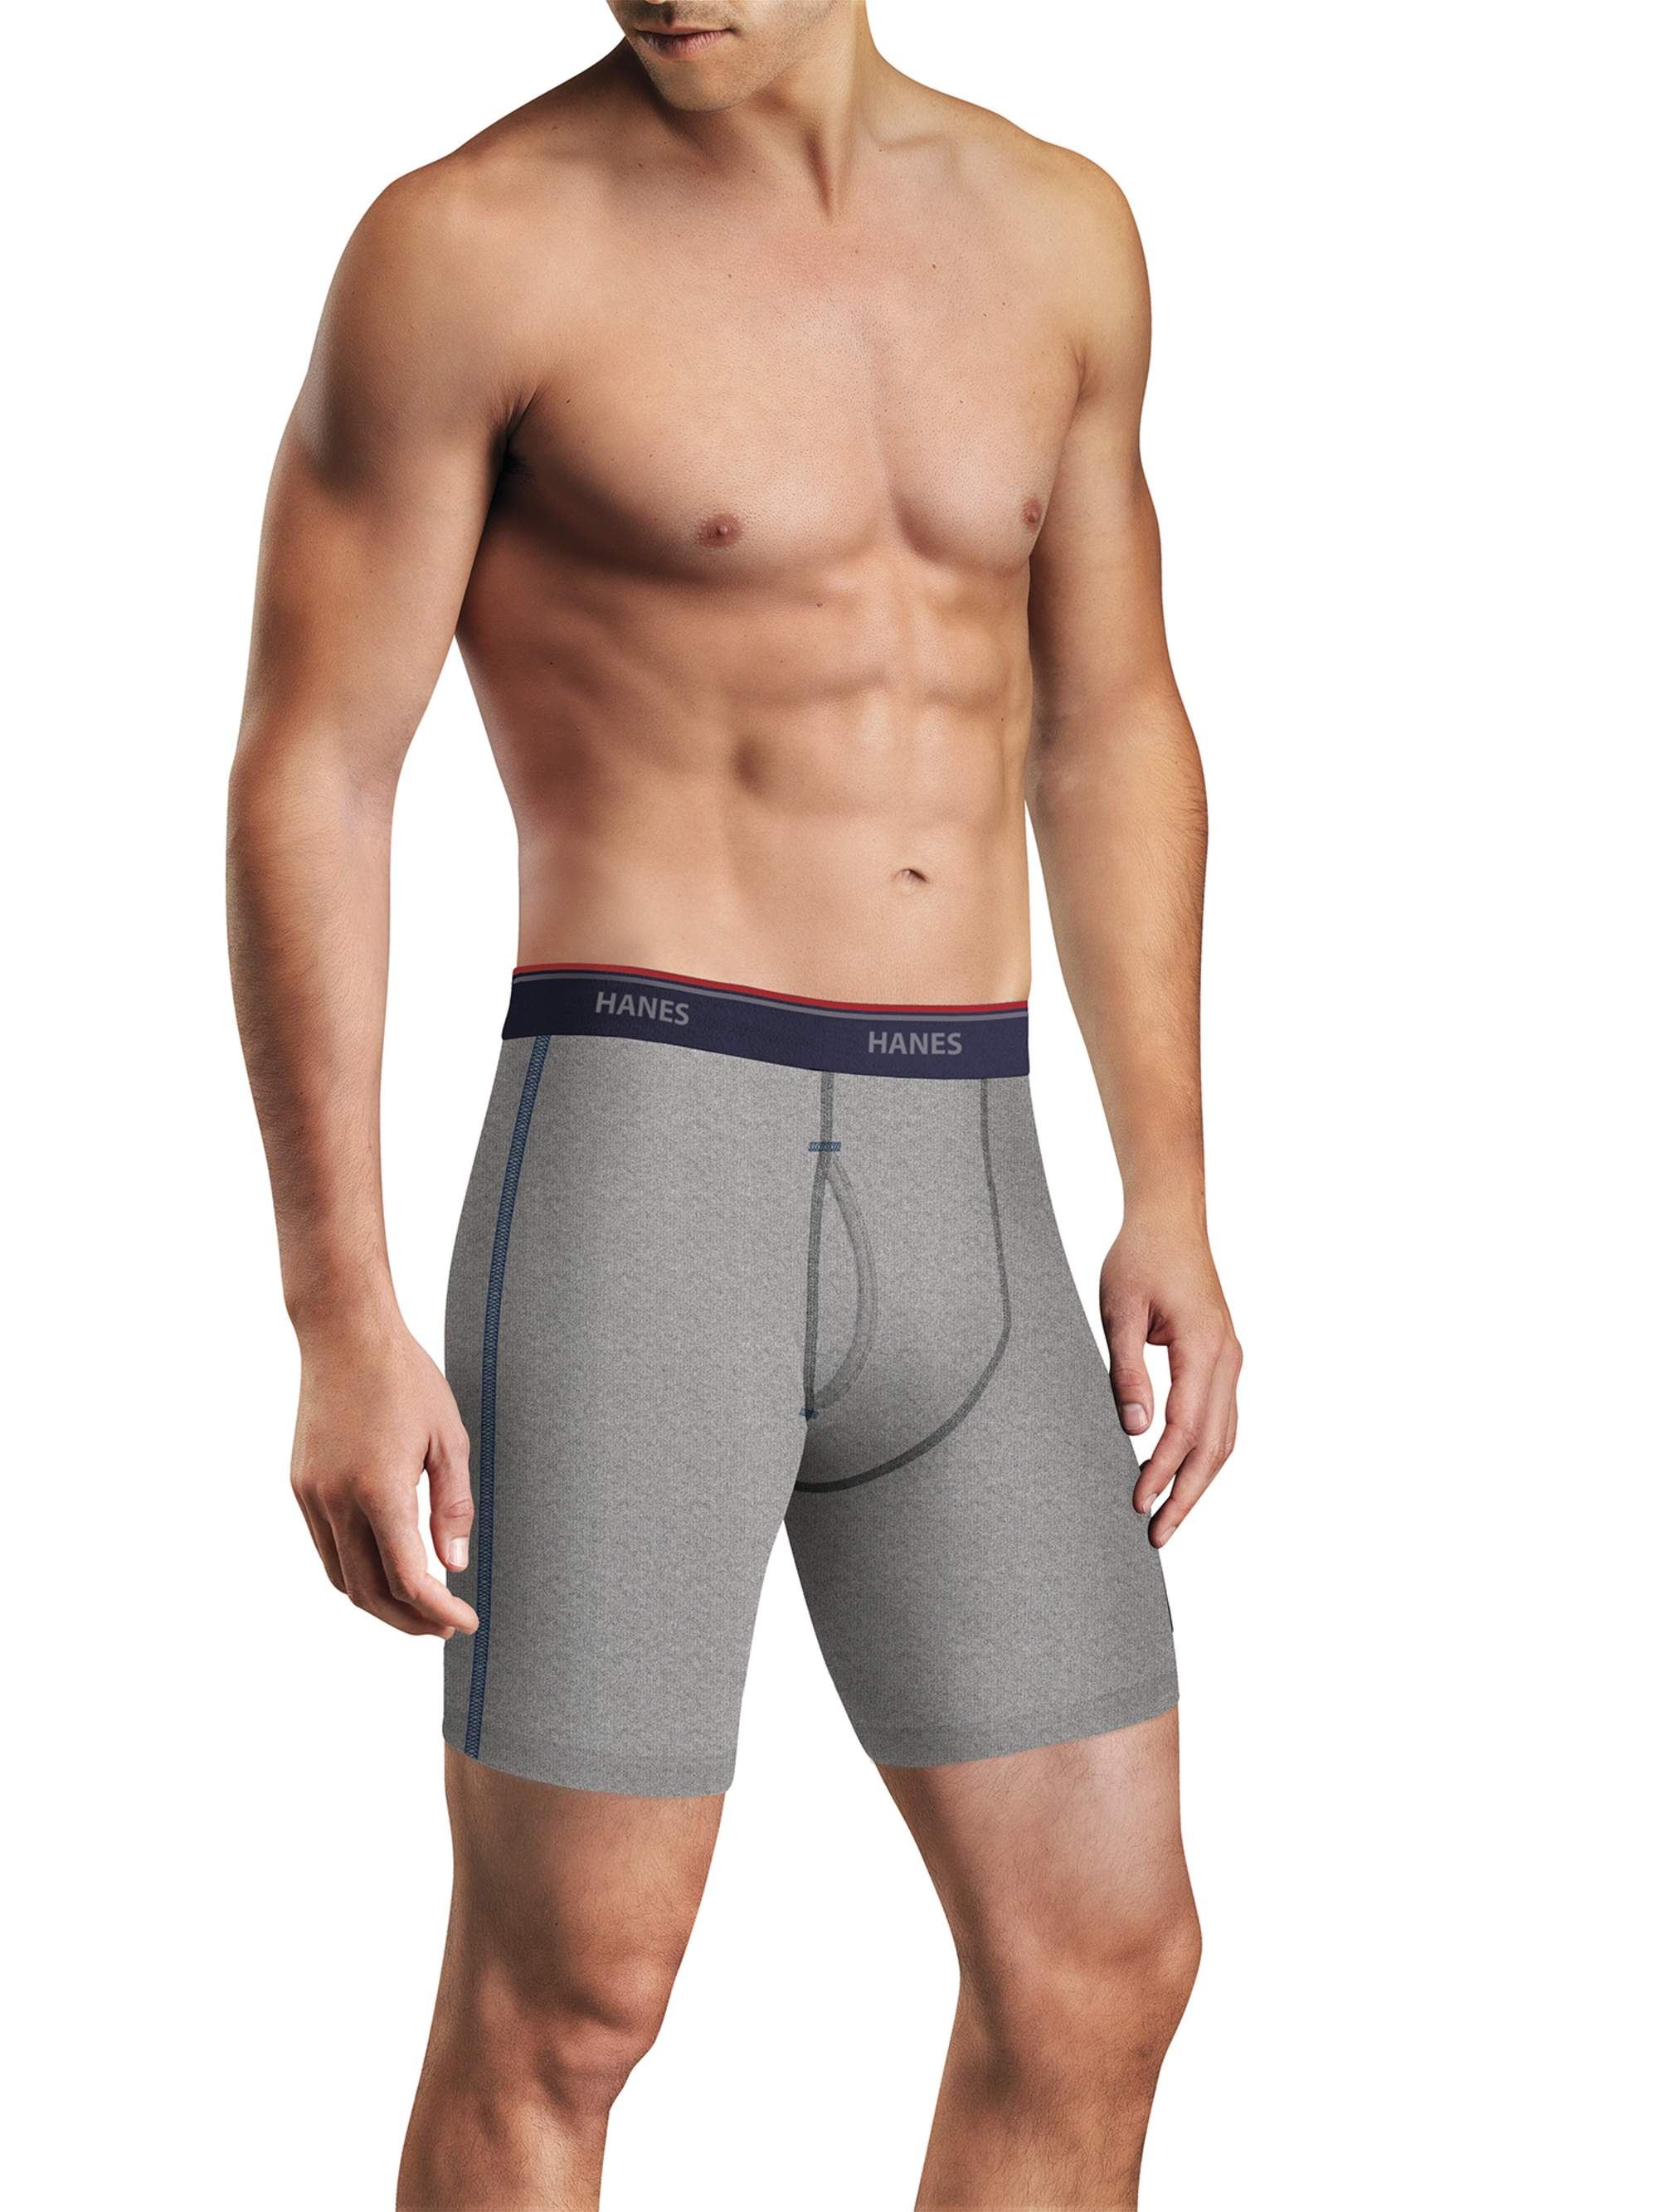 Men's FreshIQ Comfort Flex Waistband Long Leg Boxer Brief 5-Pack